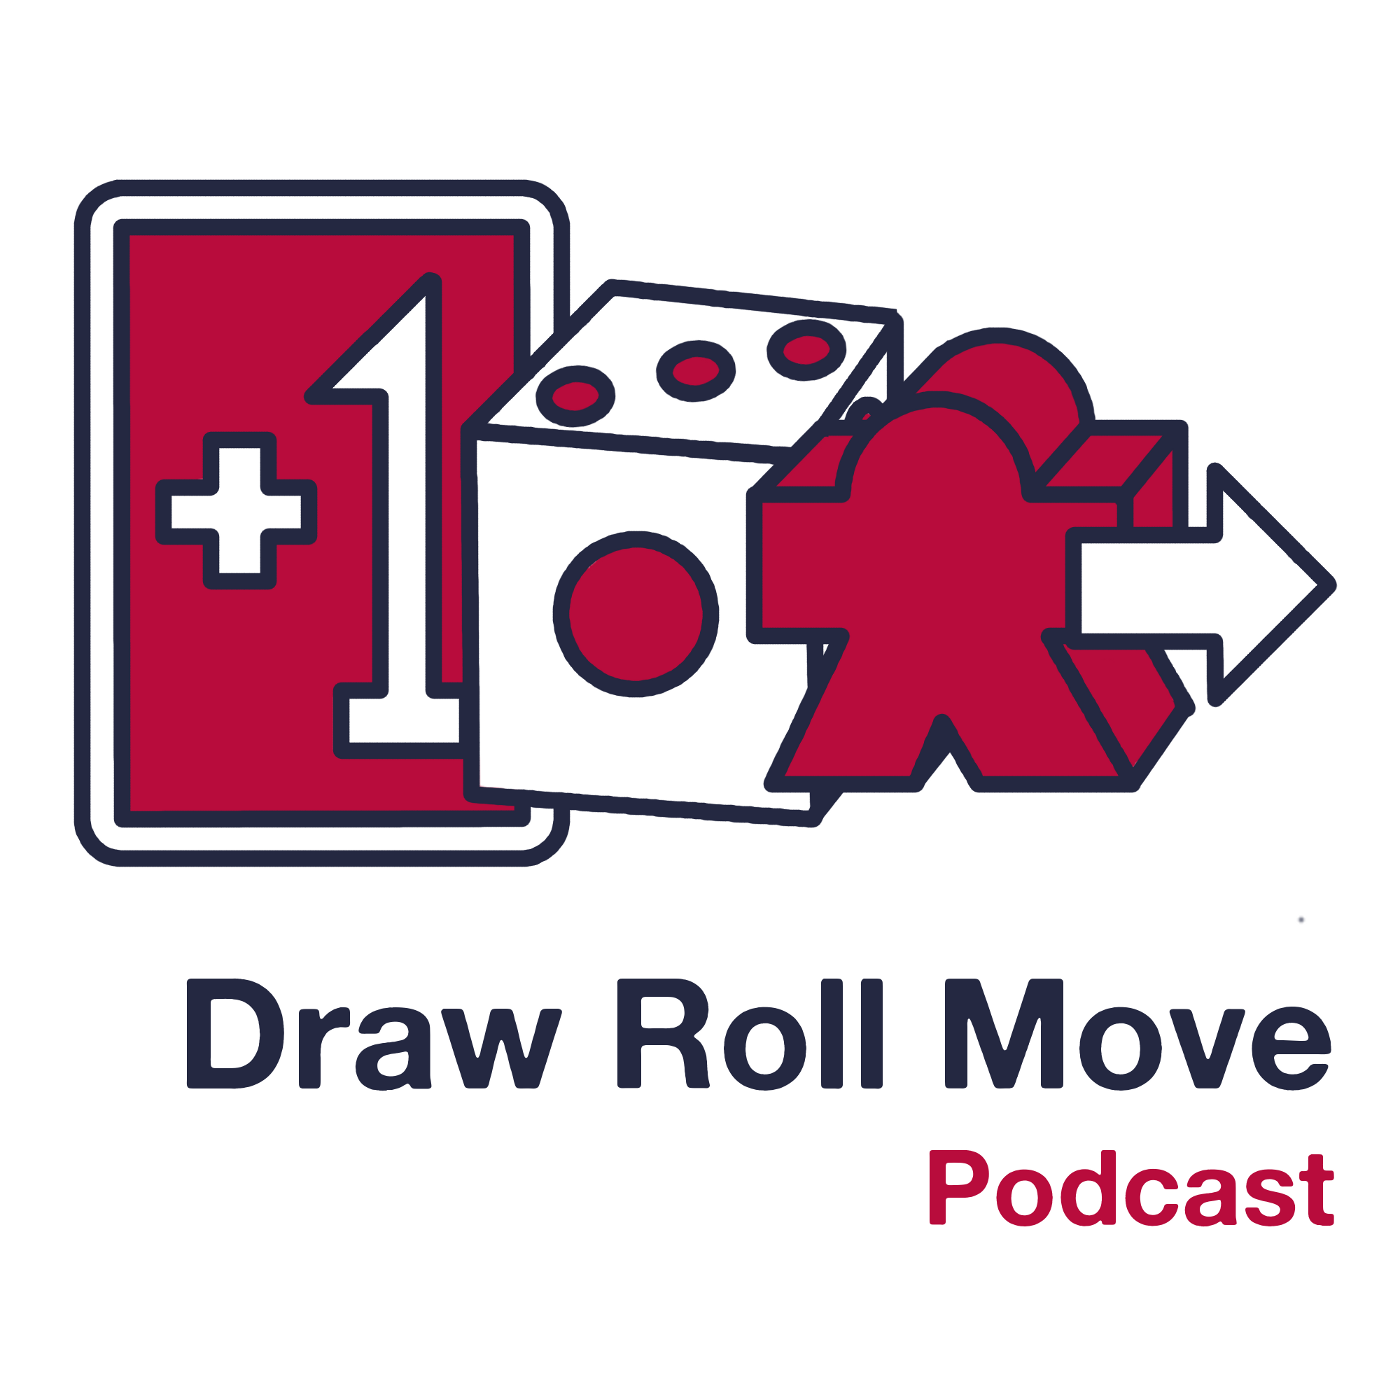 Draw Roll Move Podcast